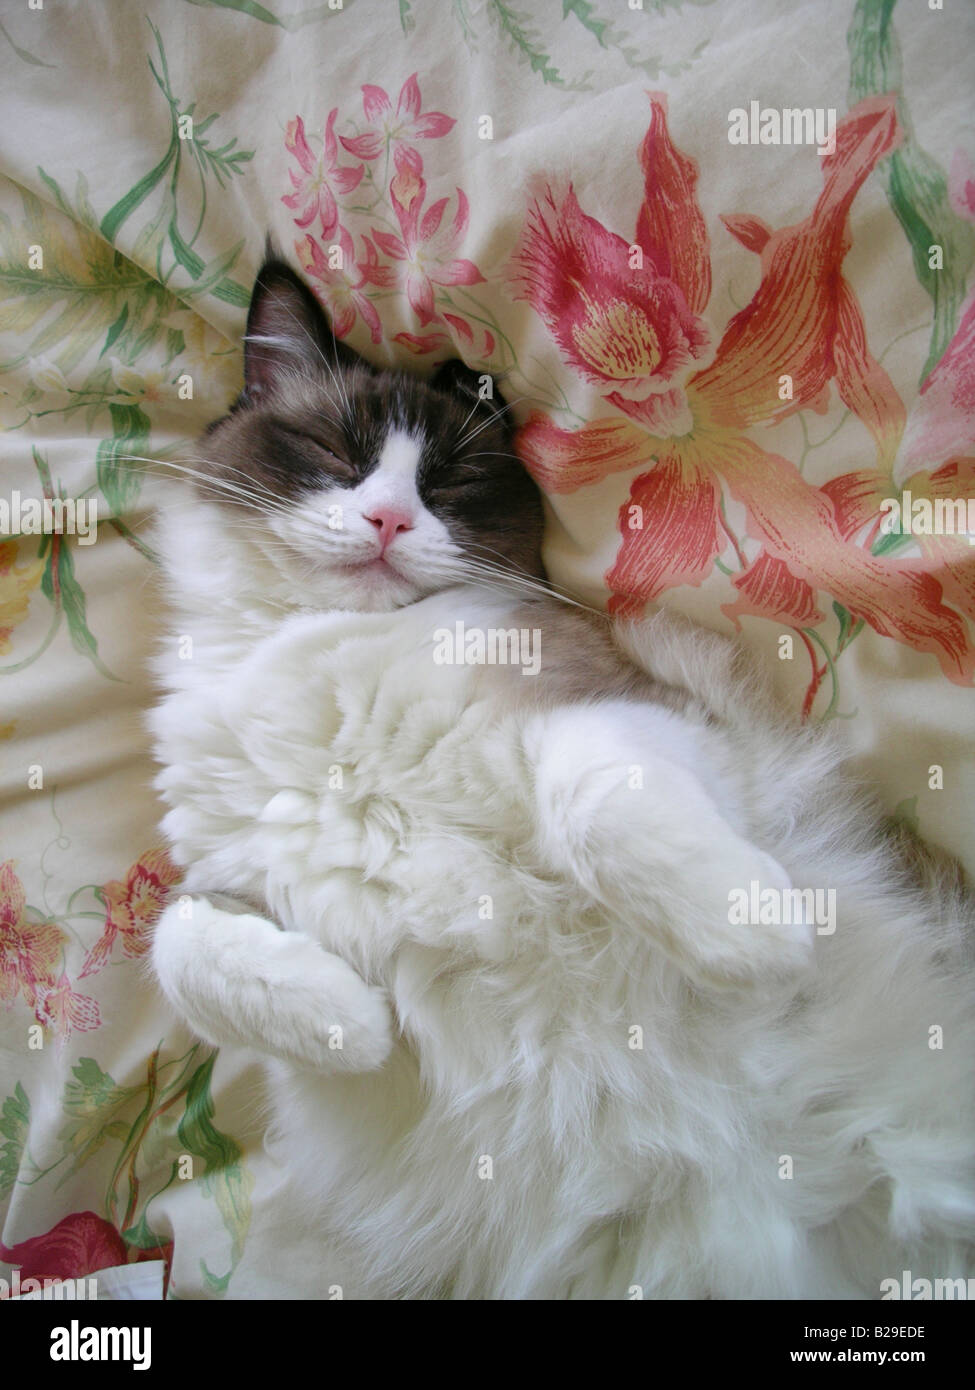 Ragdoll cat asleep on a soft bed with orchid floral print - Stock Image